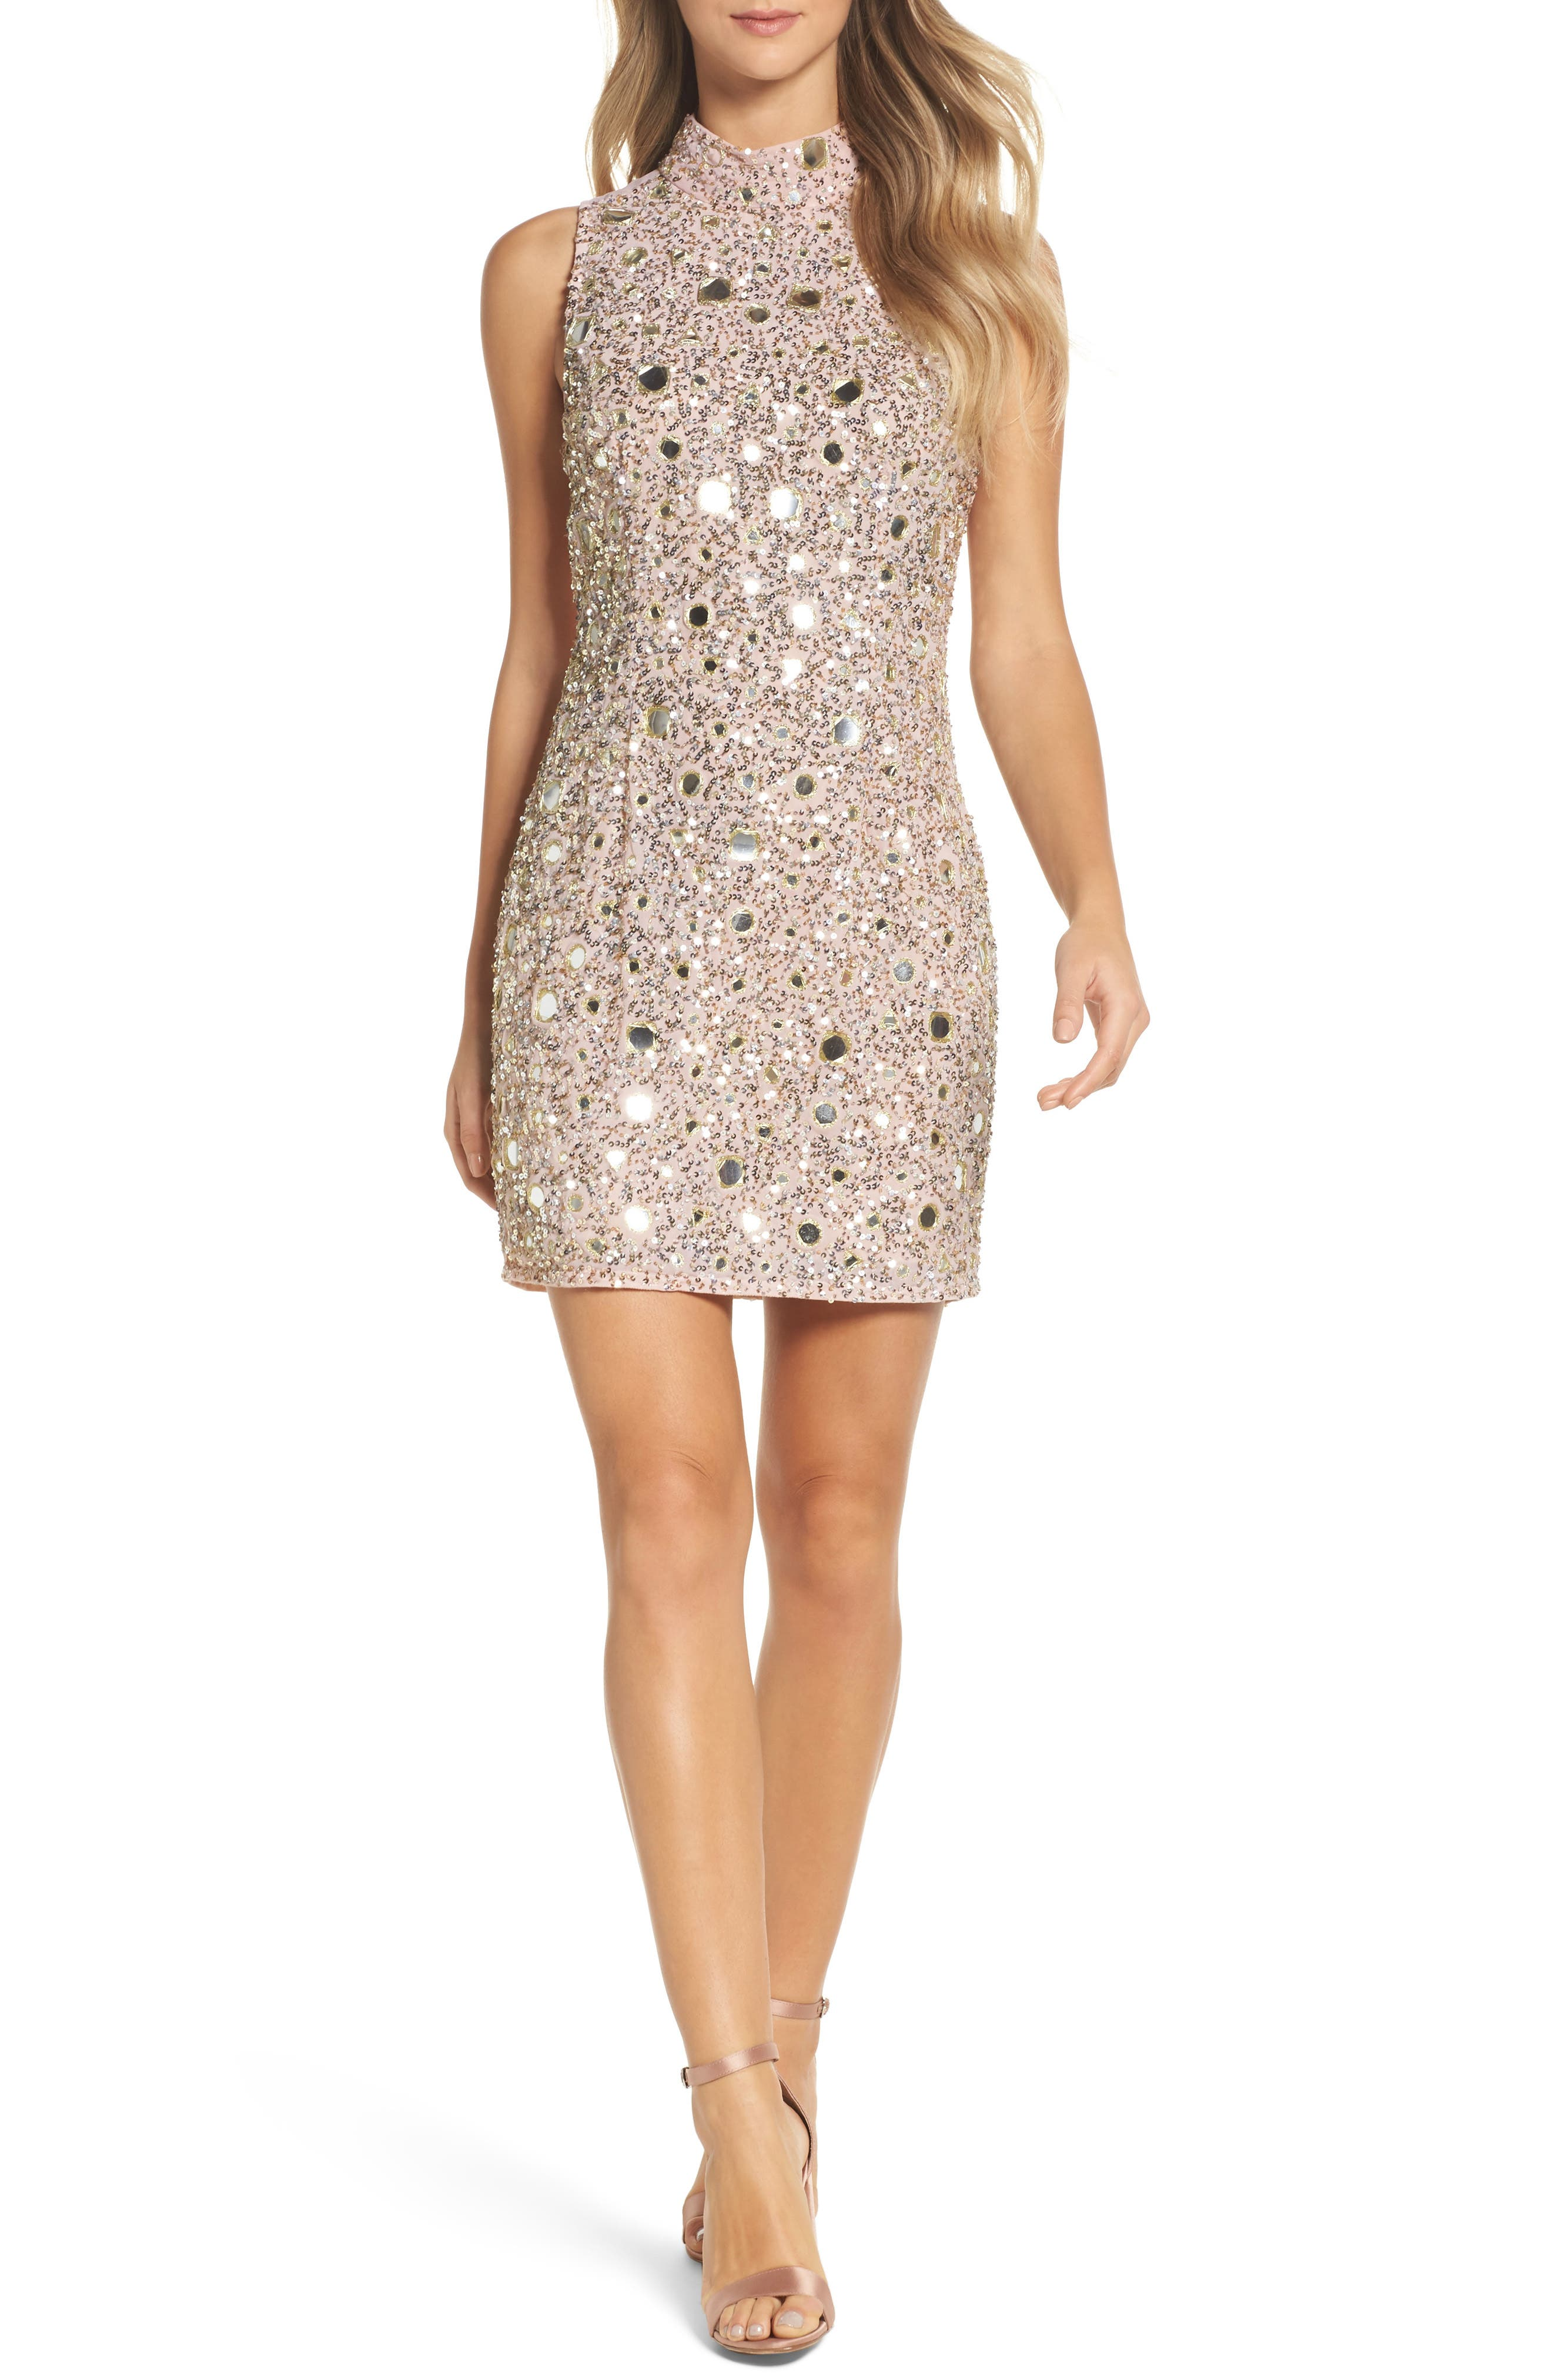 Eloise Mirrors Body-Con Dress,                         Main,                         color, Cinder Rose/ Gold